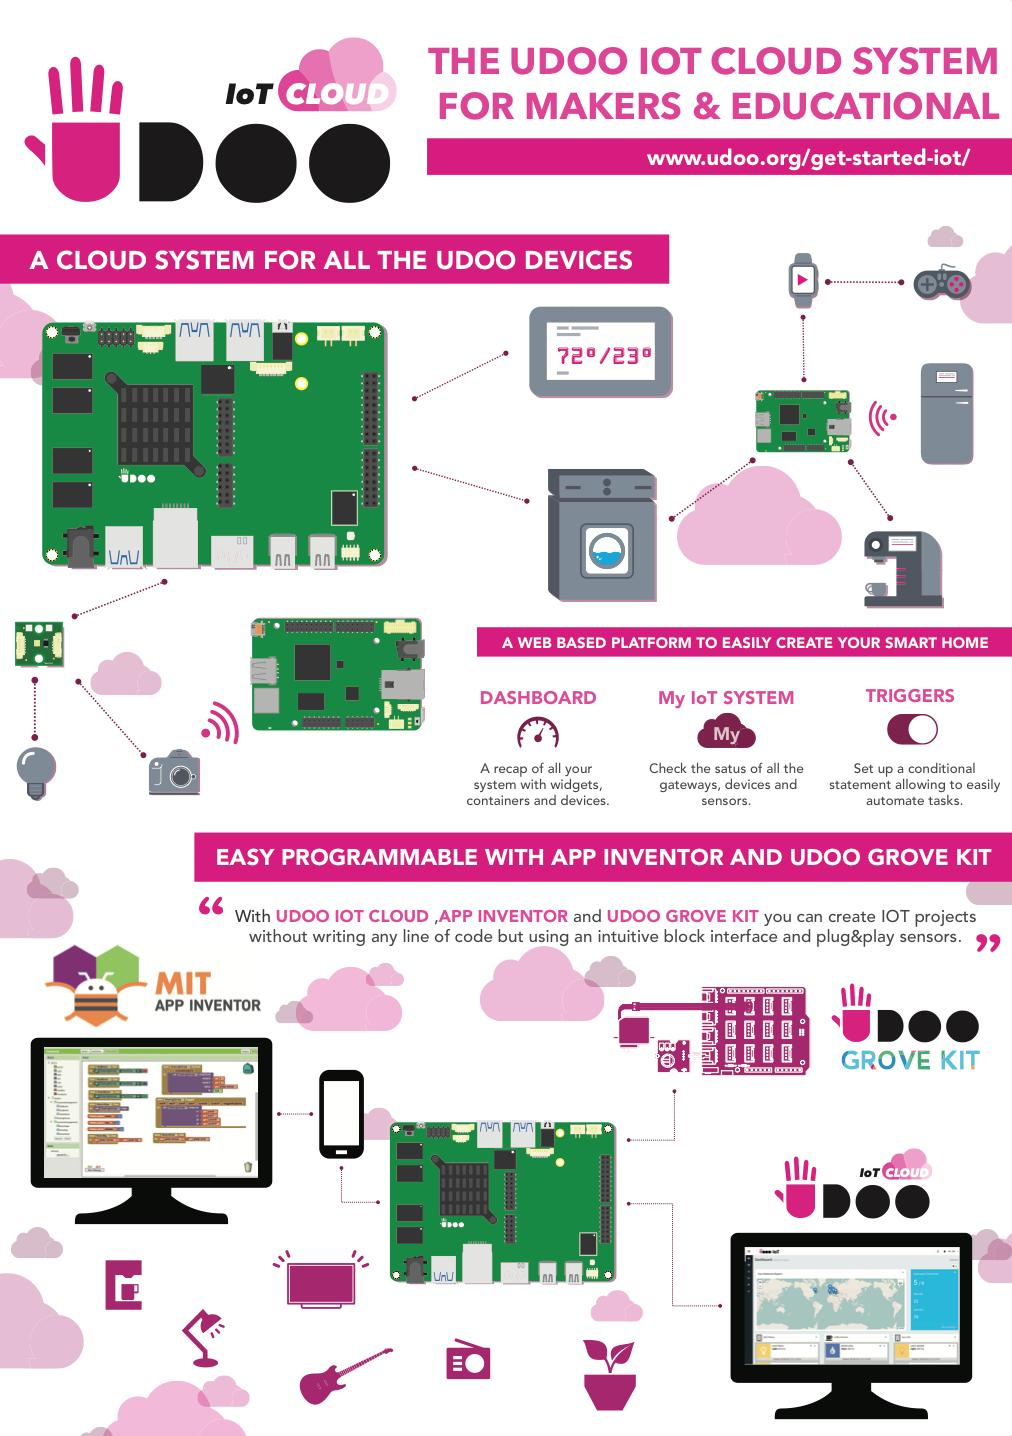 UDOO IoT CLOUD & APP INVENTOR Starting to make projects for the IOT world has never been so simple